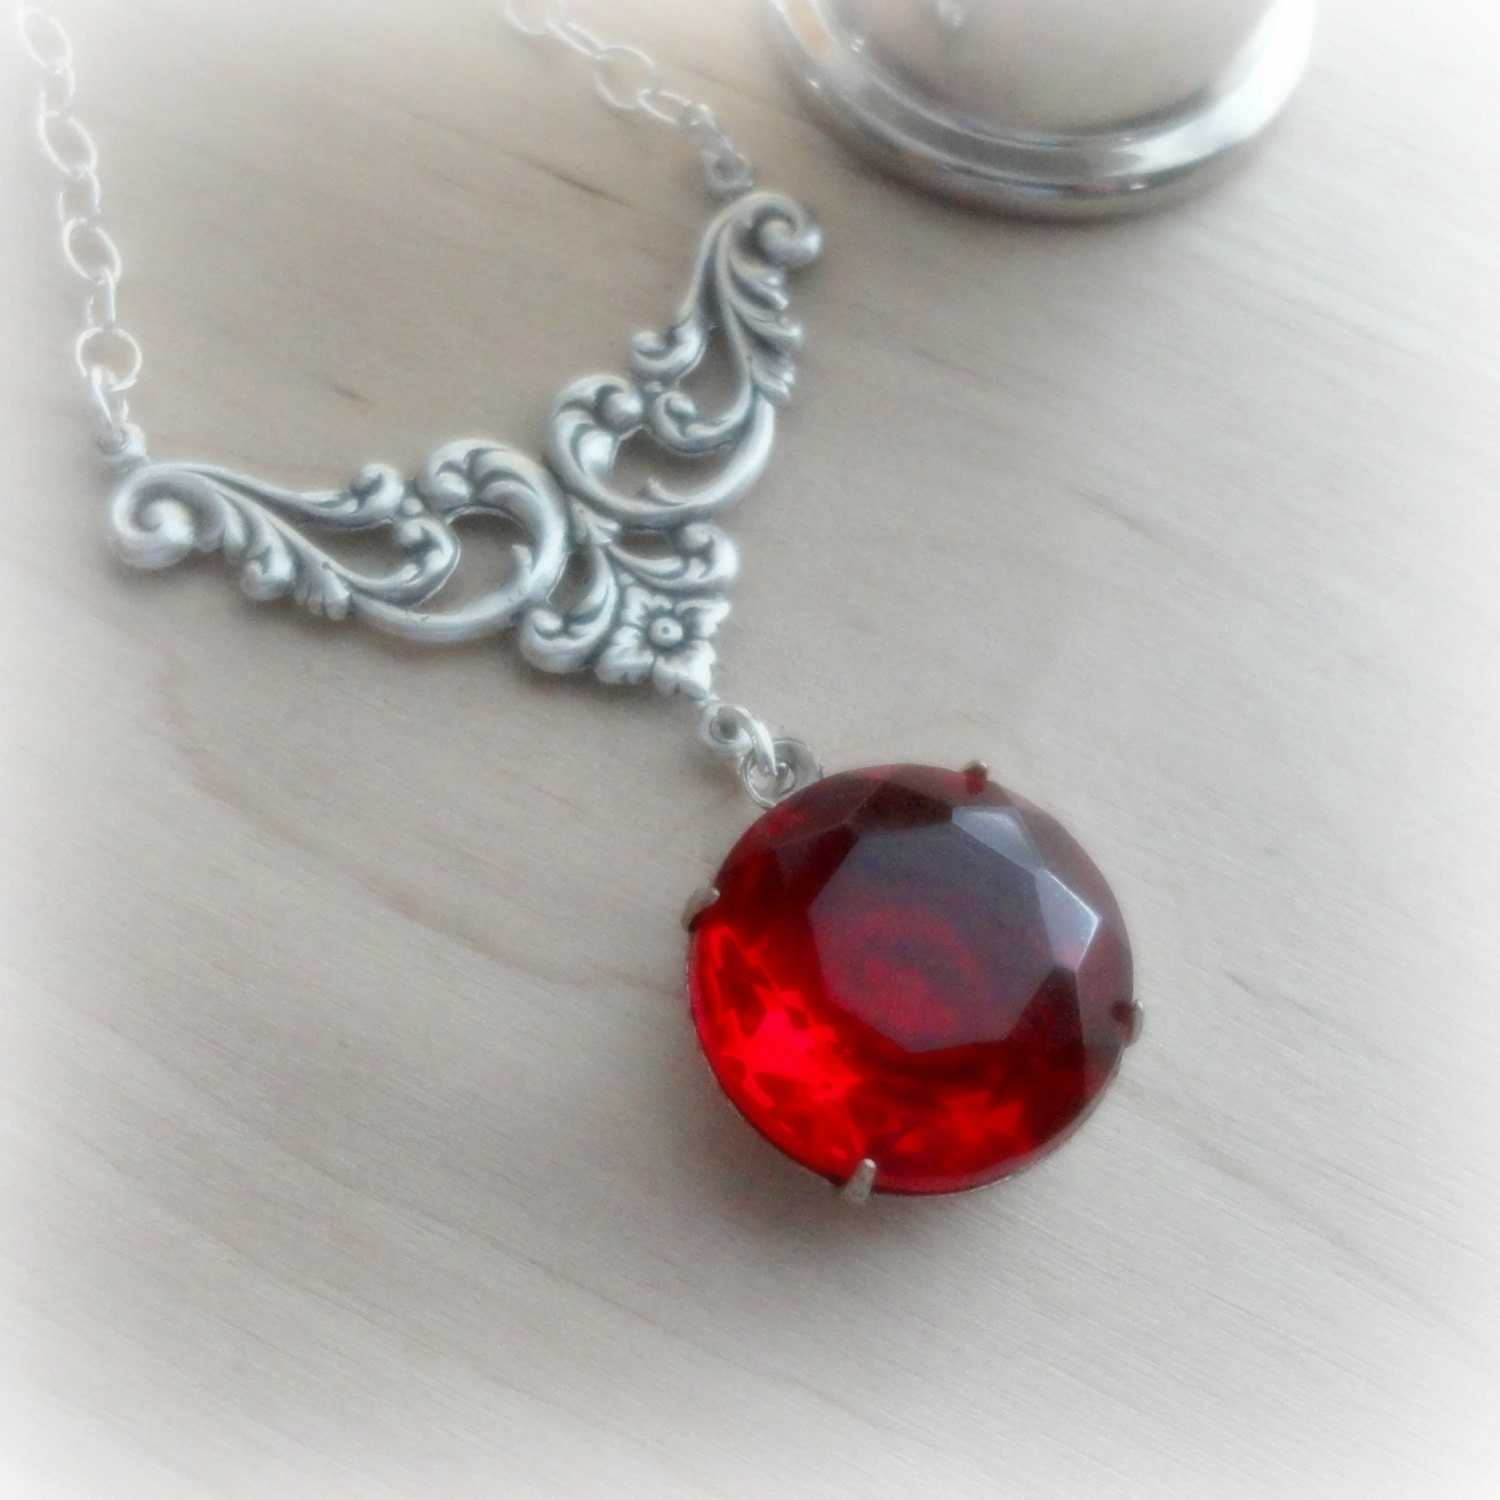 necklace garnet pendant sterling silver by